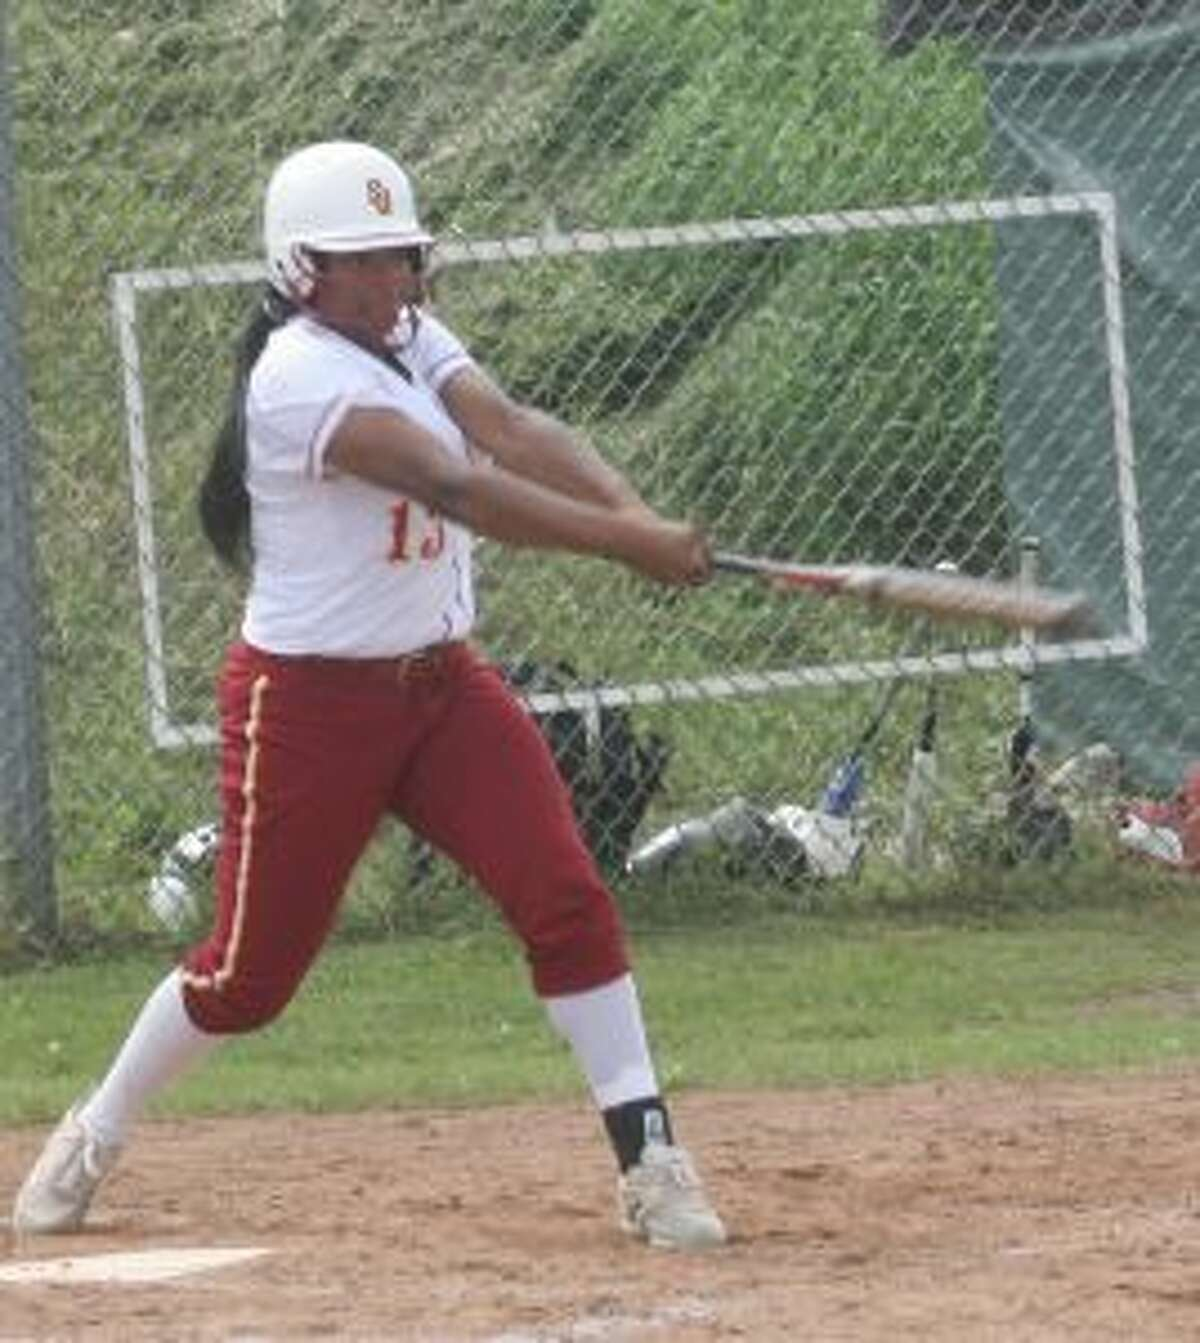 Paige Hunter had two hits and three RBIs.